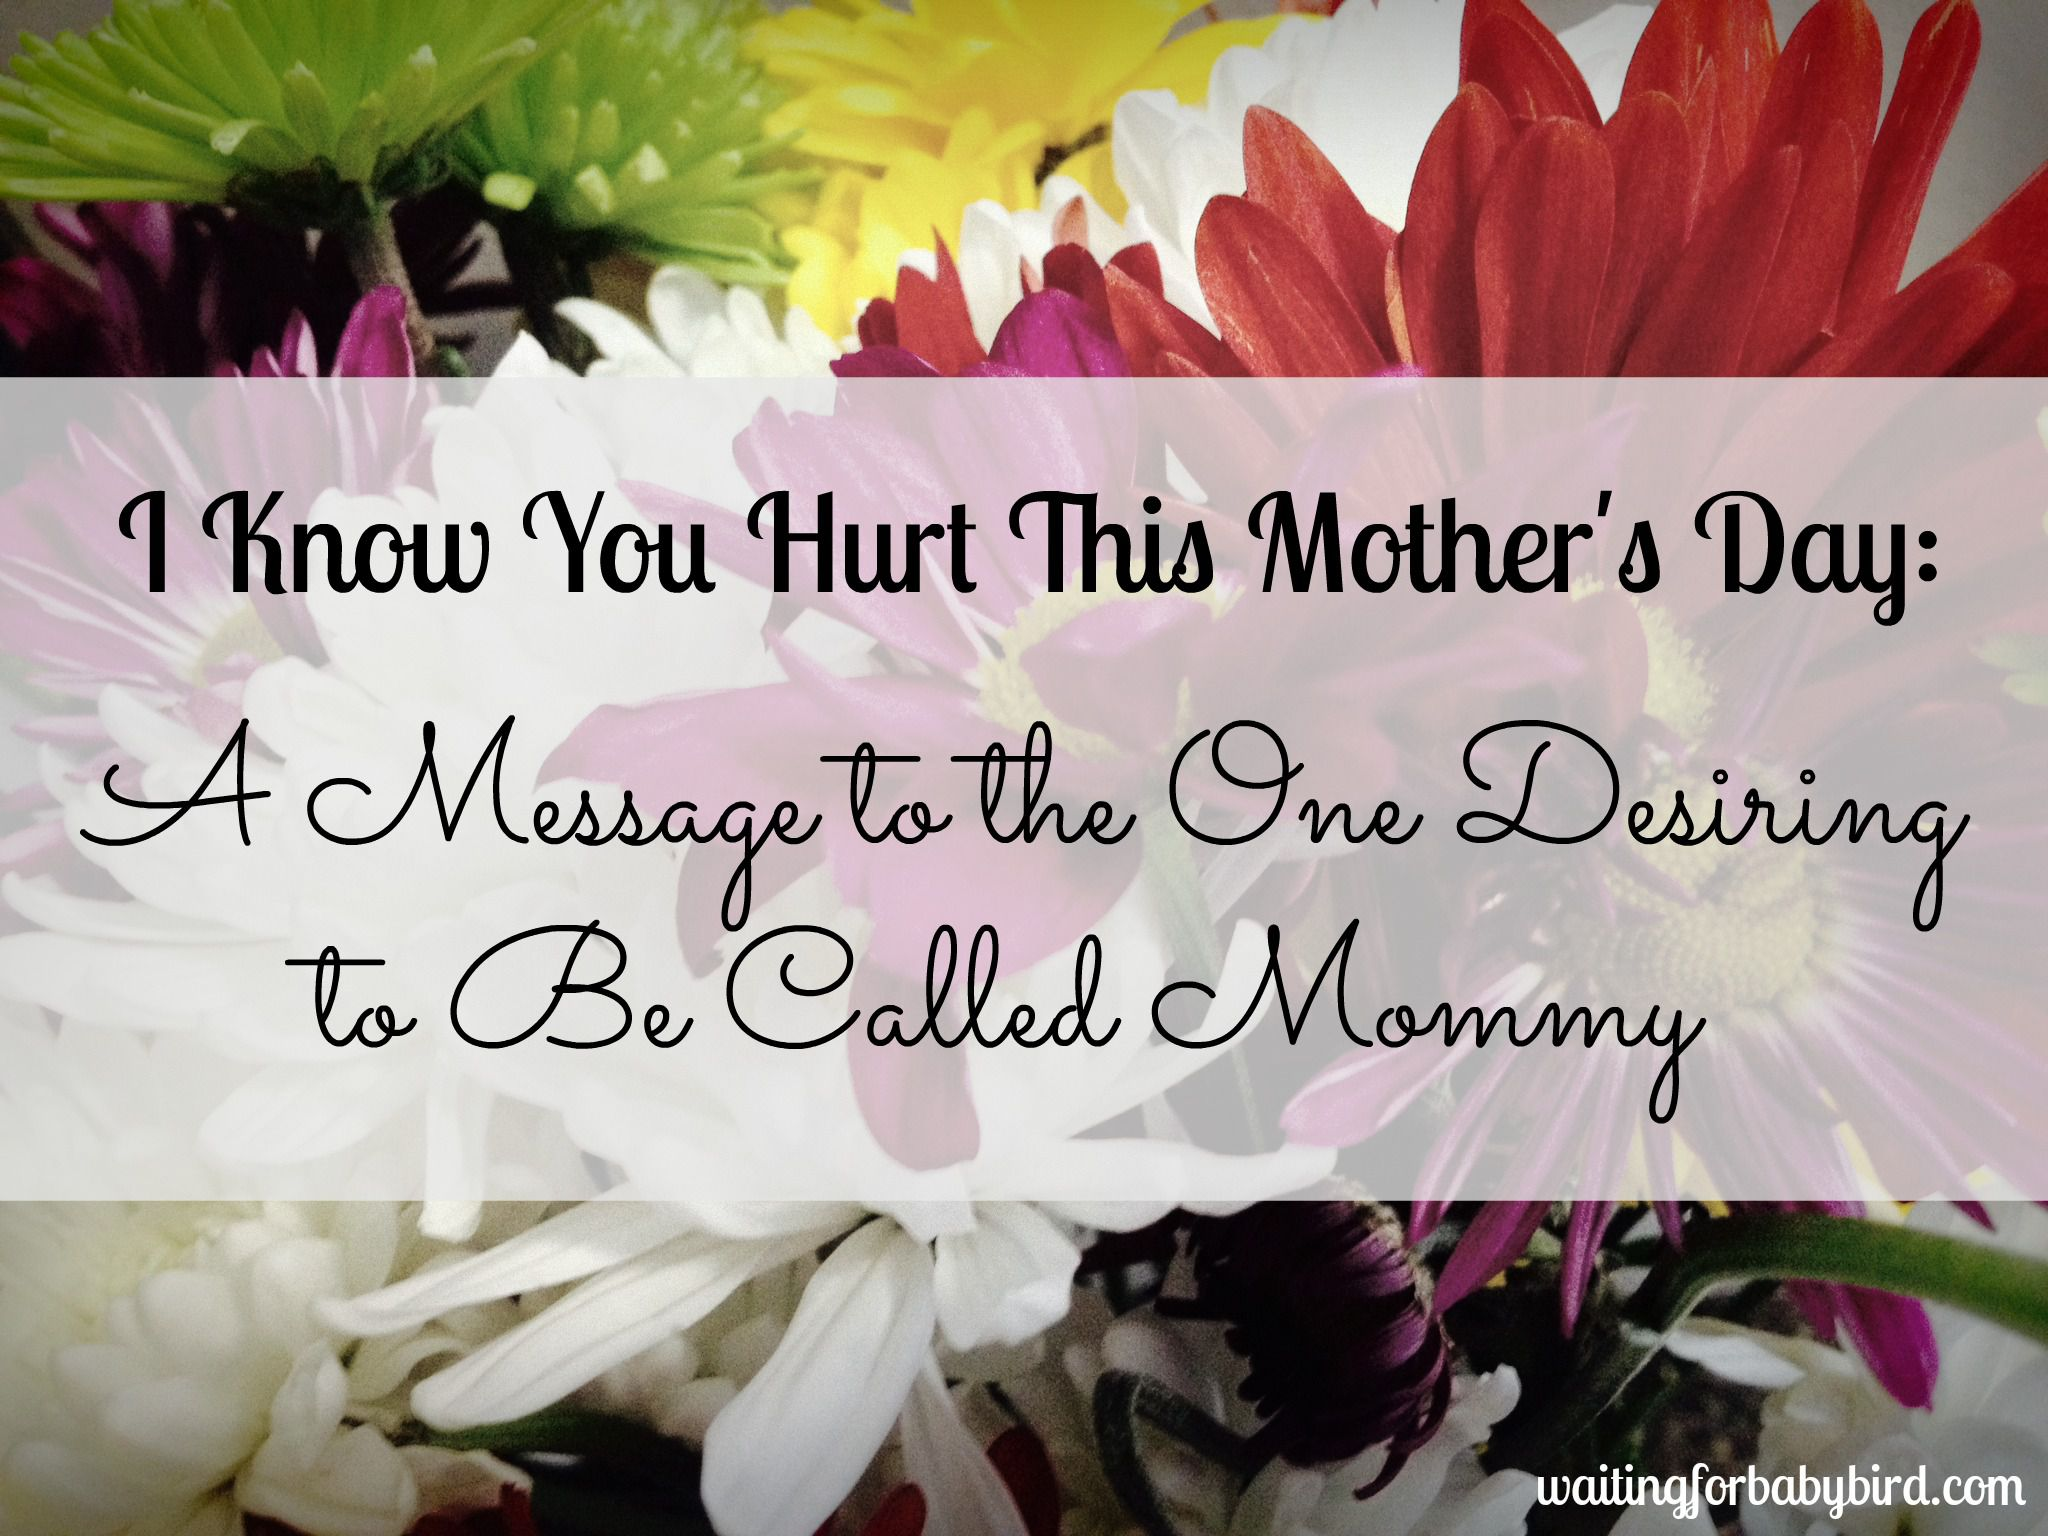 Happy Mothers Day Messages, Images, Status Quotes - Wiki-How